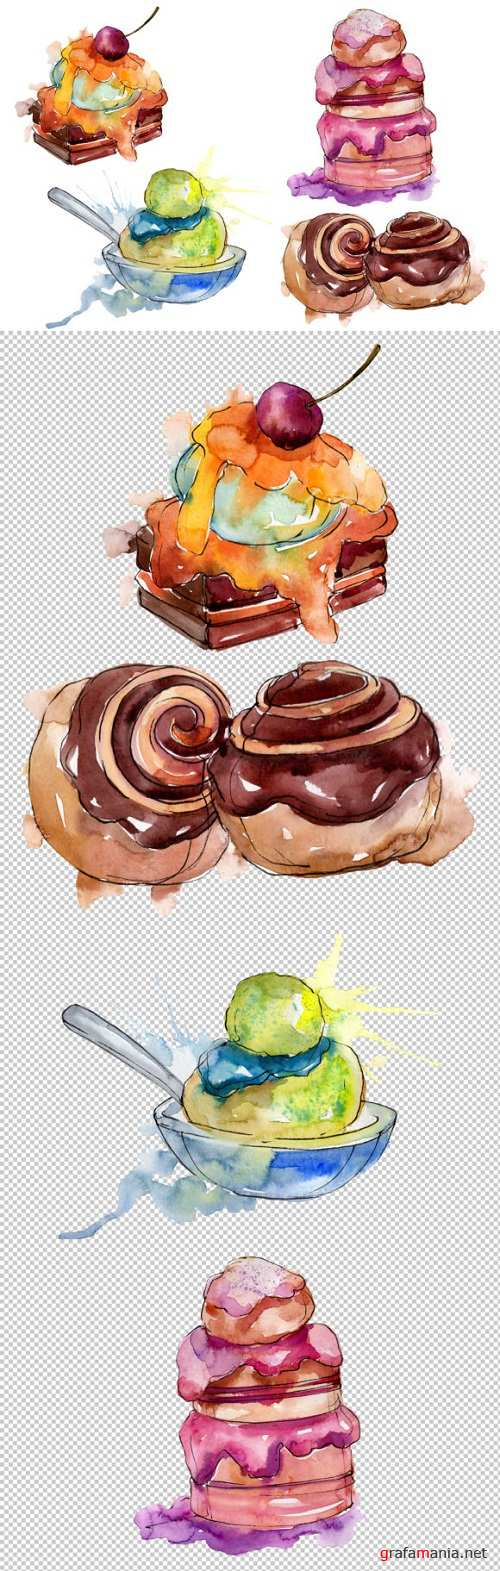 Dessert Appetizing Watercolor PNG